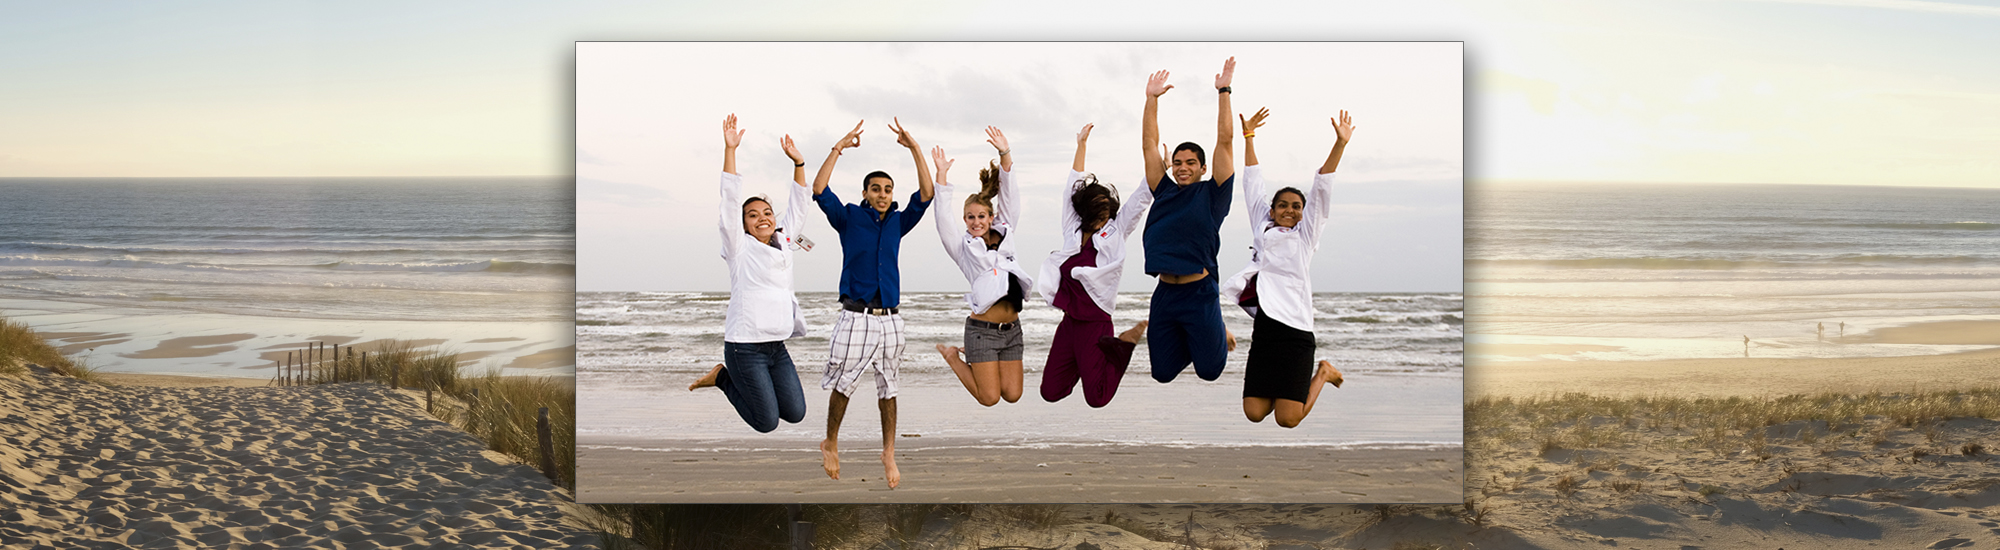 Beach Students jumping for joy